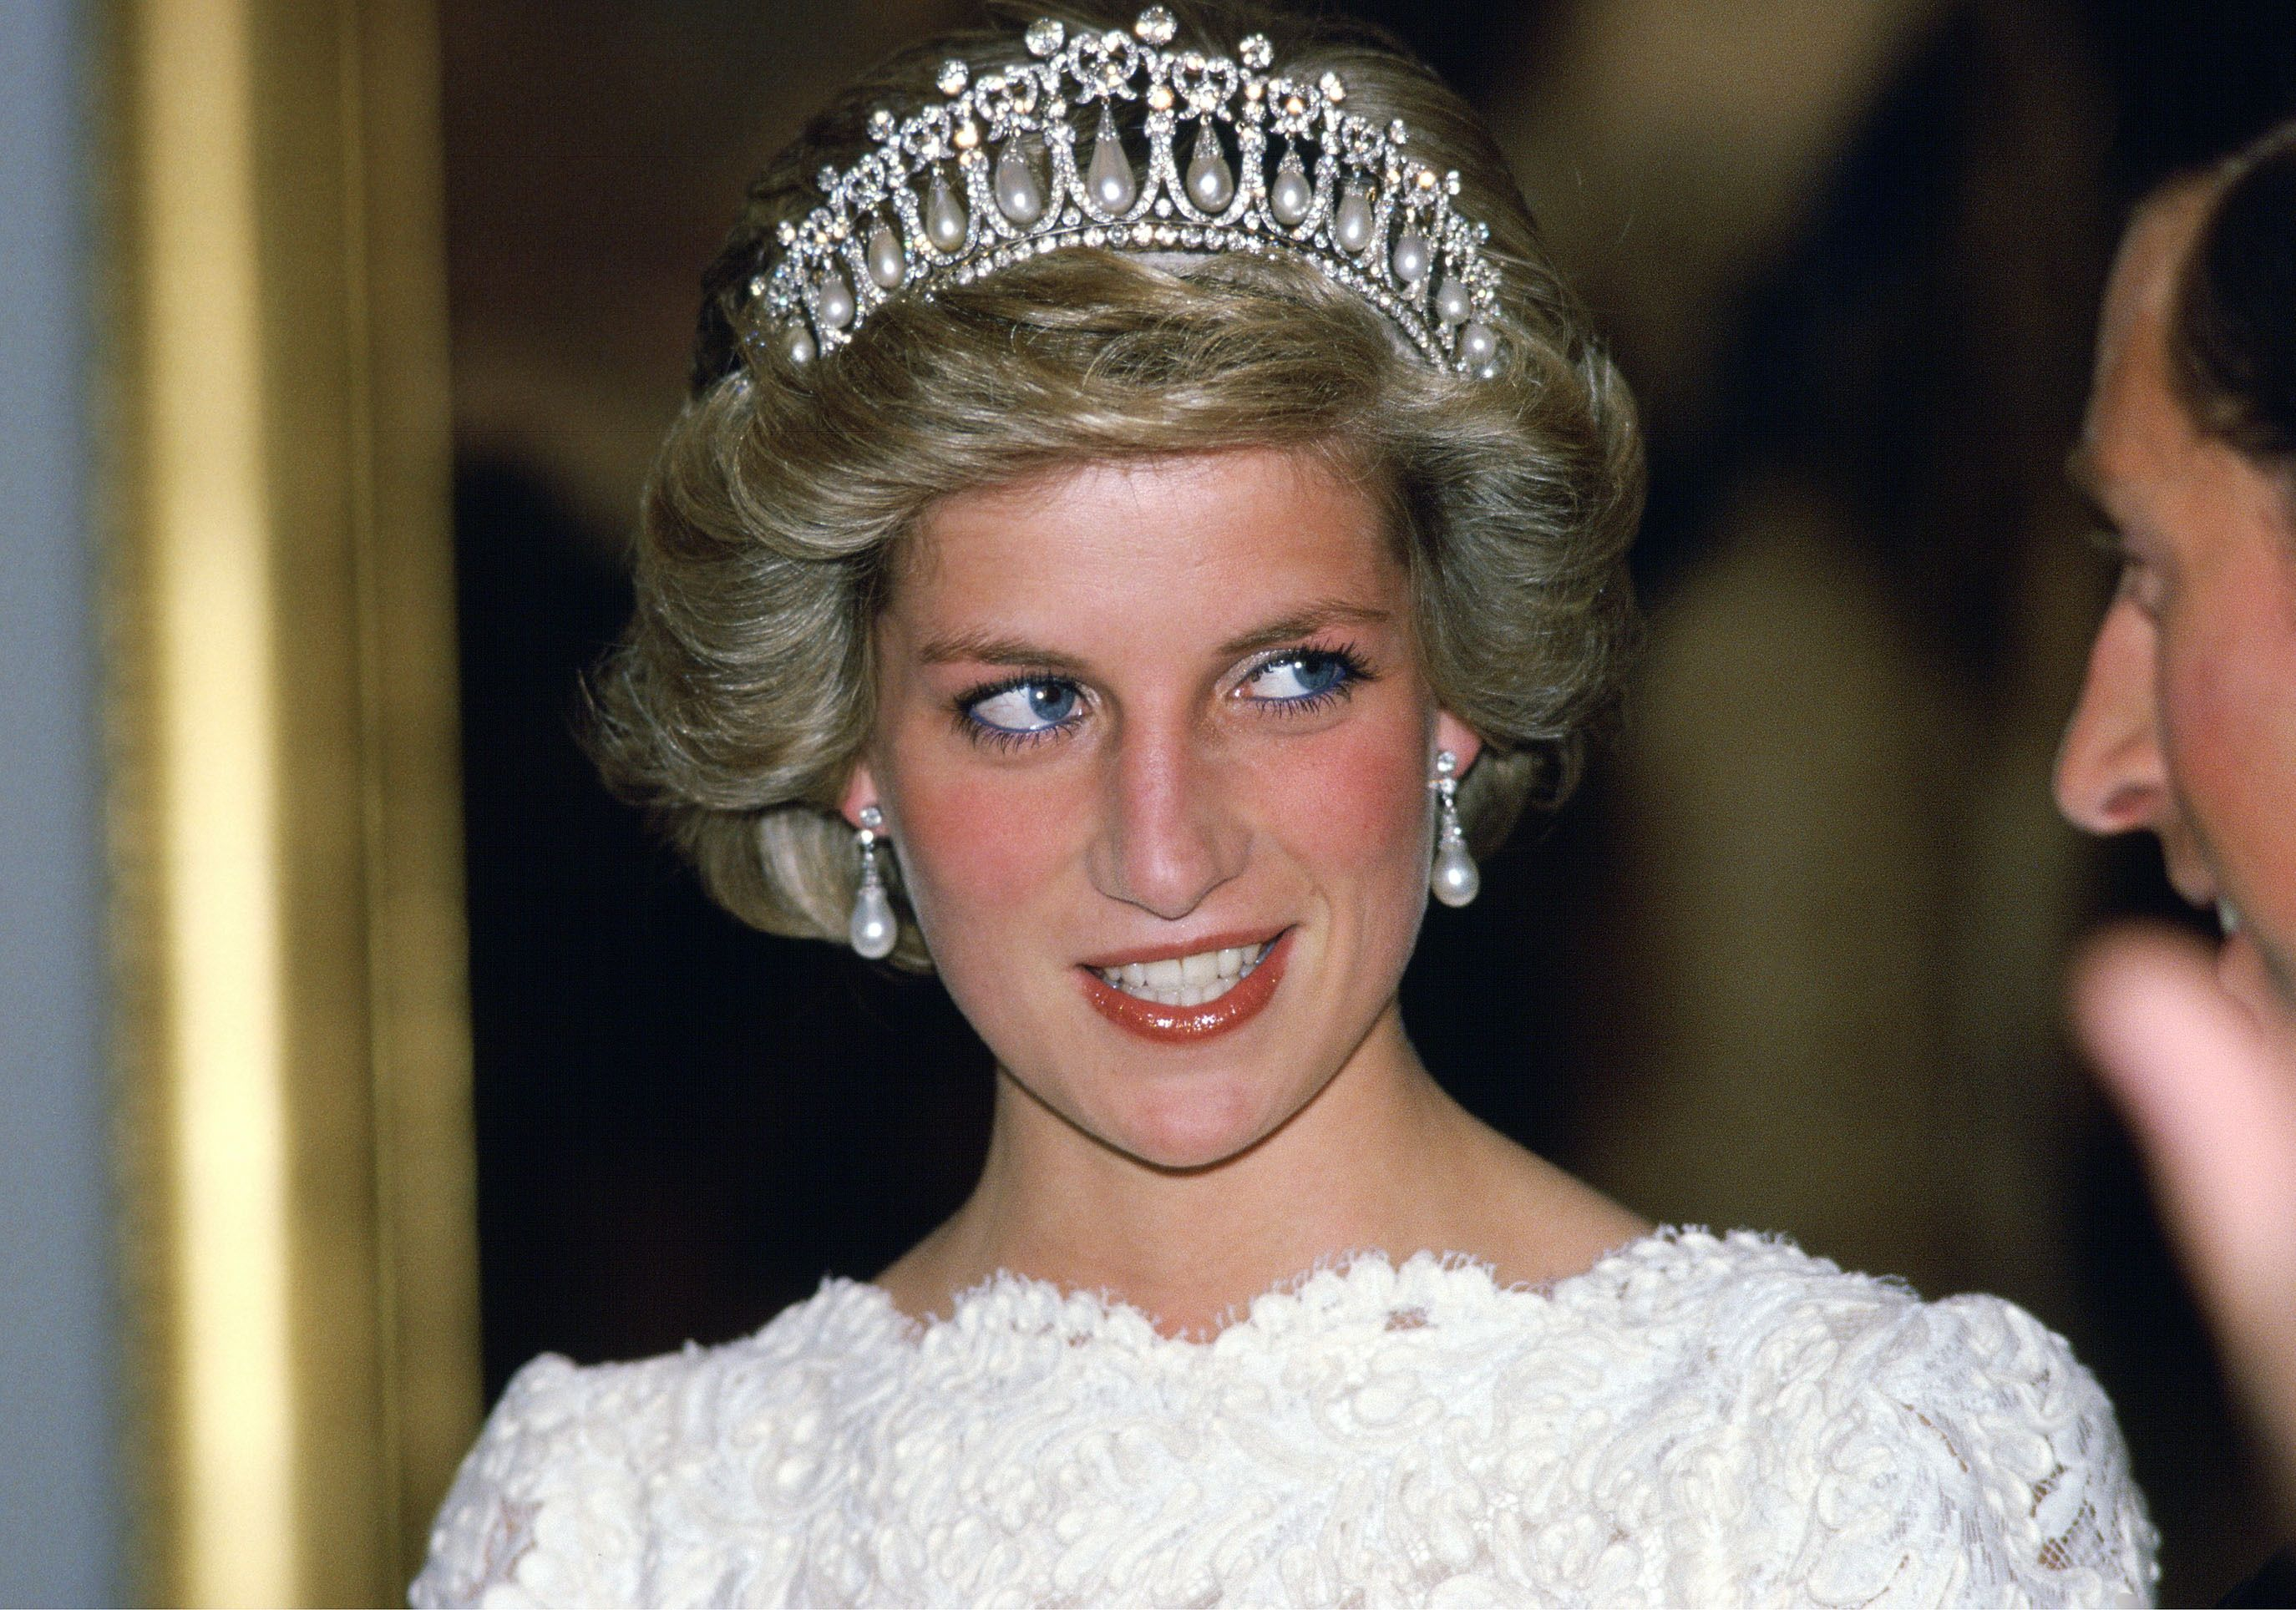 The New Tiara Etiquette: The Duchess Of Cambridge And Saint Laurent Bring Back The Look